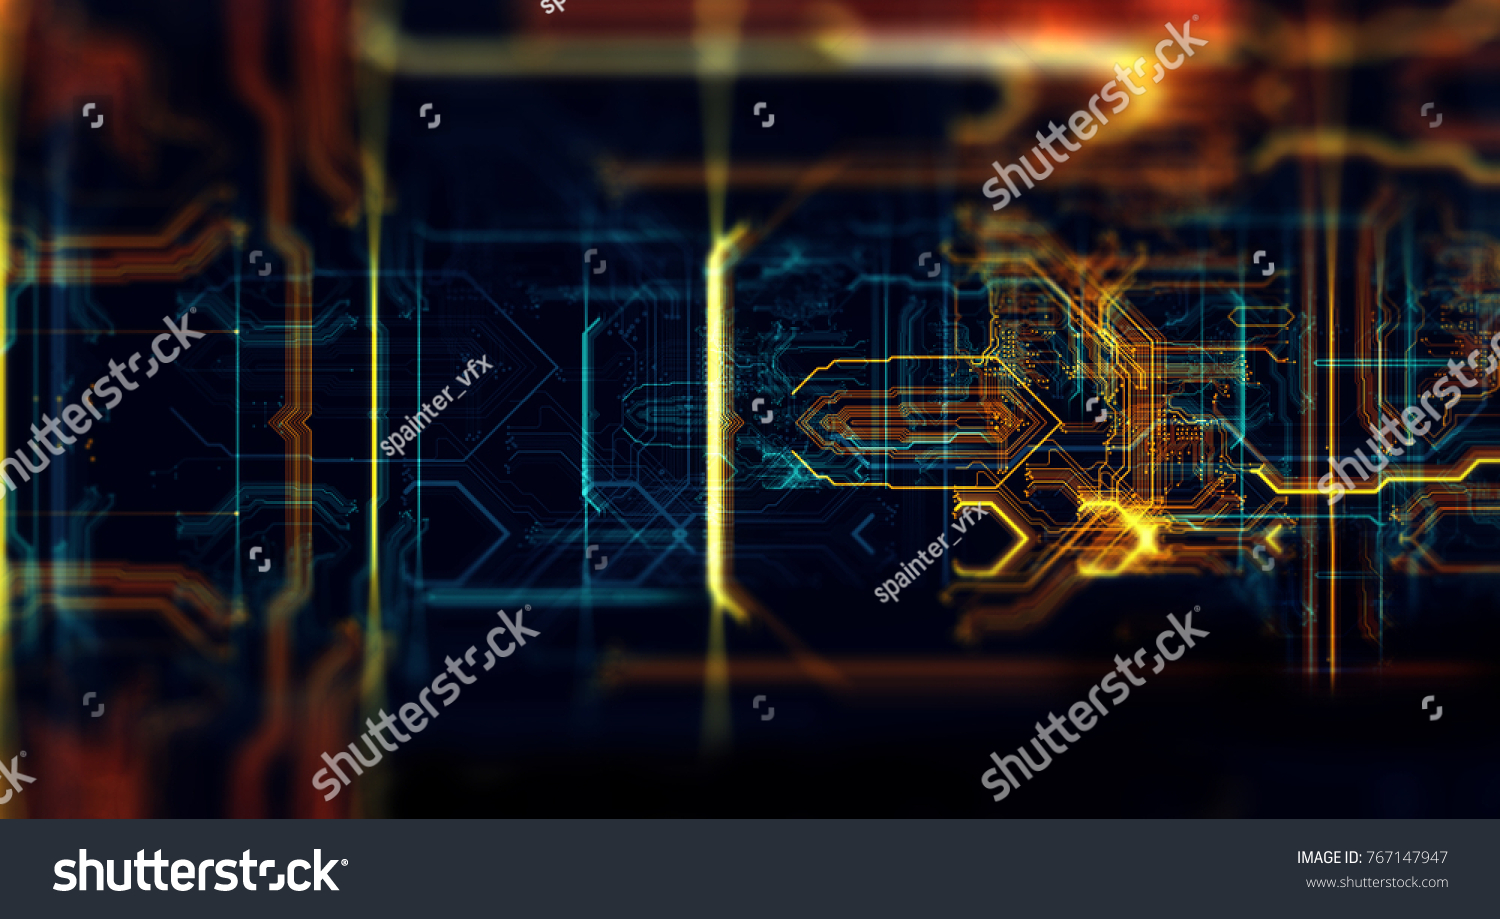 Circuit Board Background Can Be Used As Digital Dynamic Wallpaper Virus Text Stock Image Technology 3d Illustration Render Abstract Made Of Array